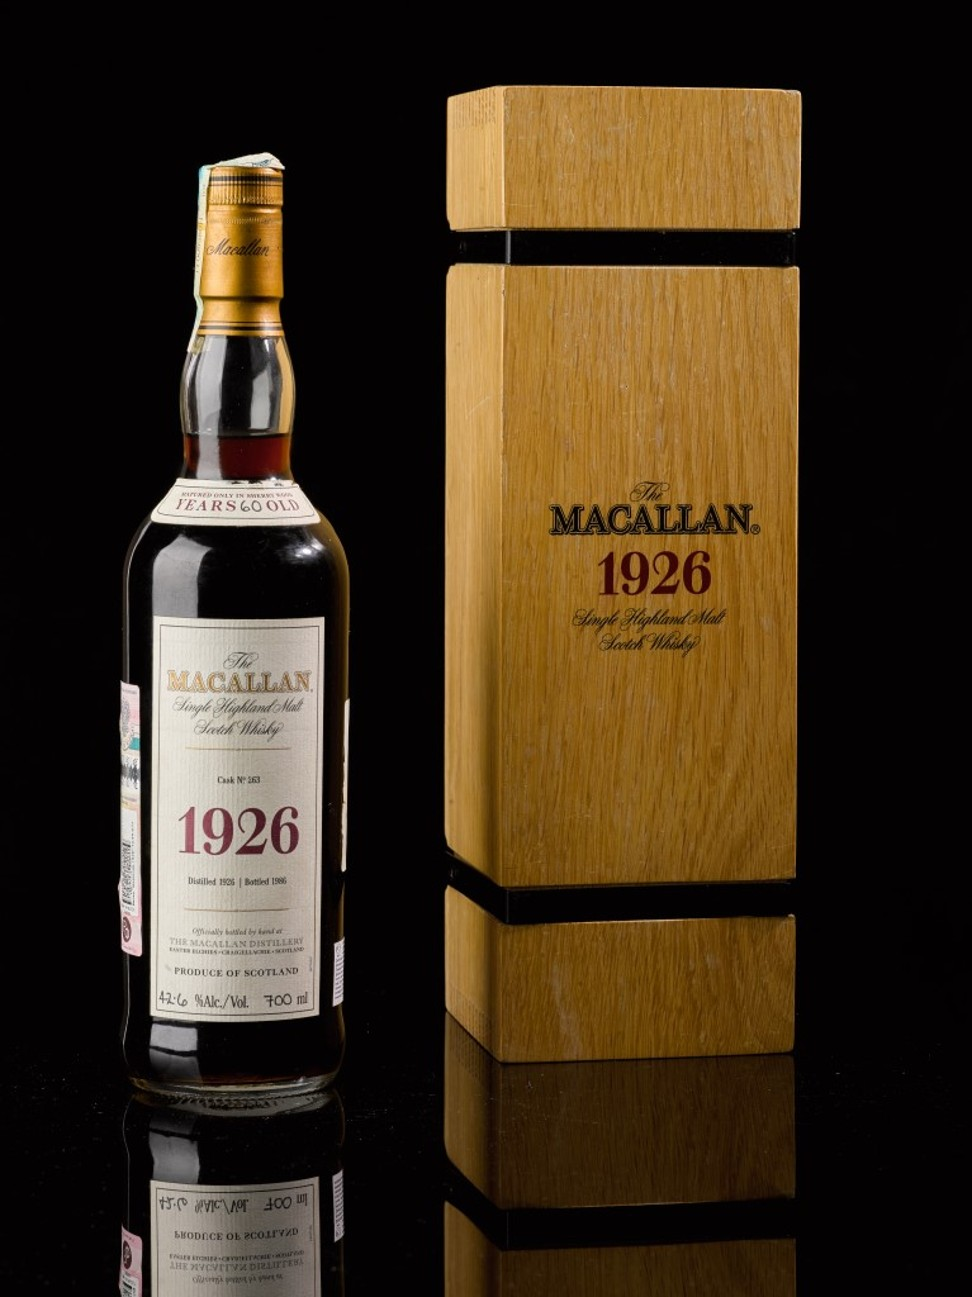 STYLE Edit: With US$5 million of booze, Sotheby's 'Ultimate Whisky Collection' is the most valuable whisky auction ever